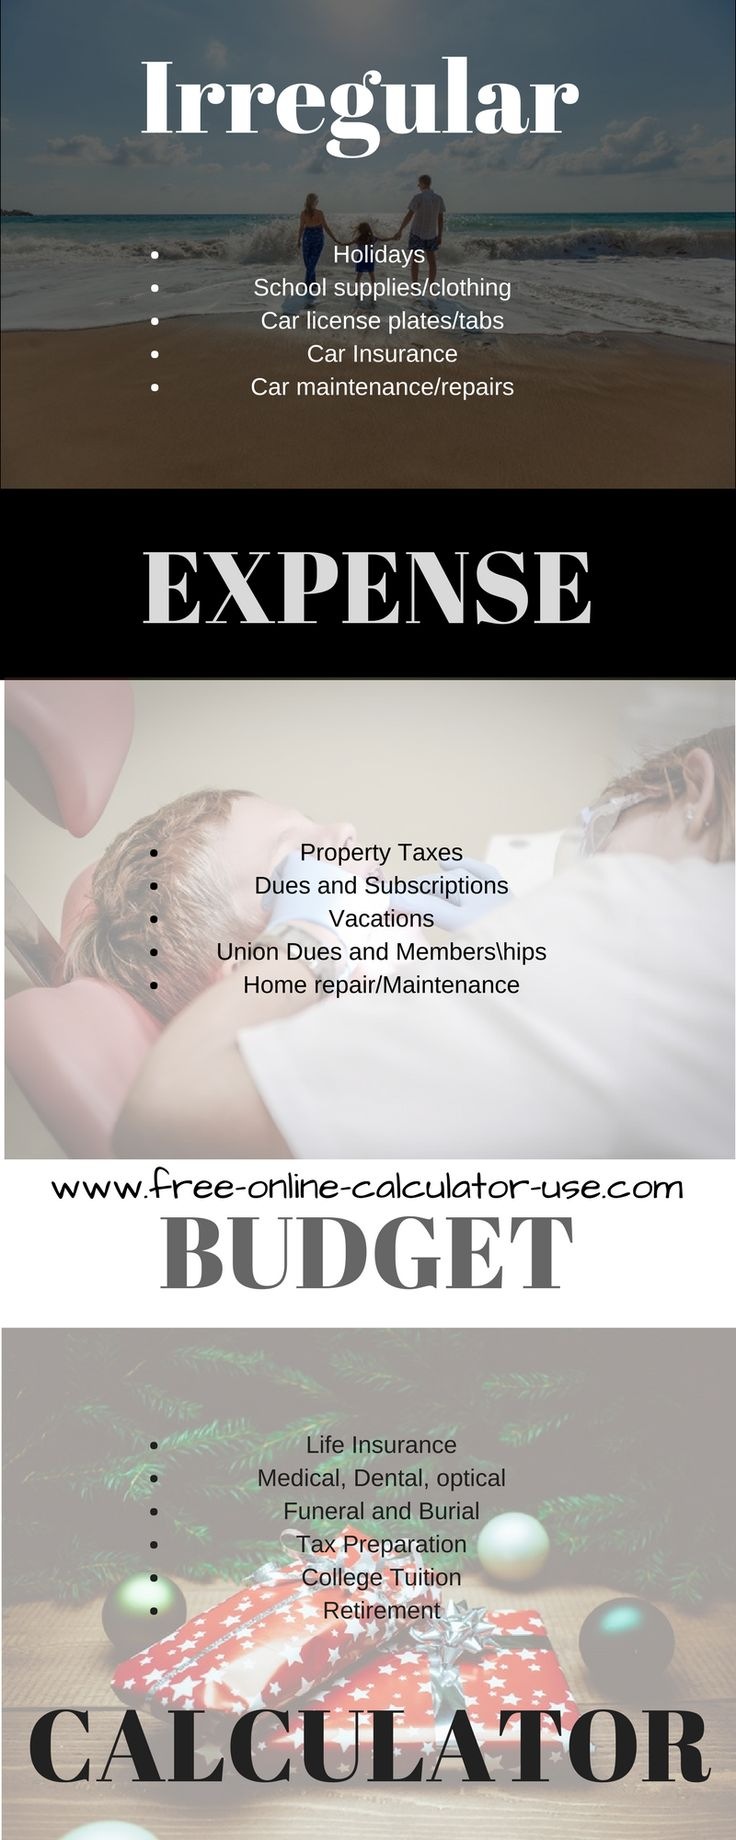 25 best ideas about Budget Calculator – Monthly Expense Calculator